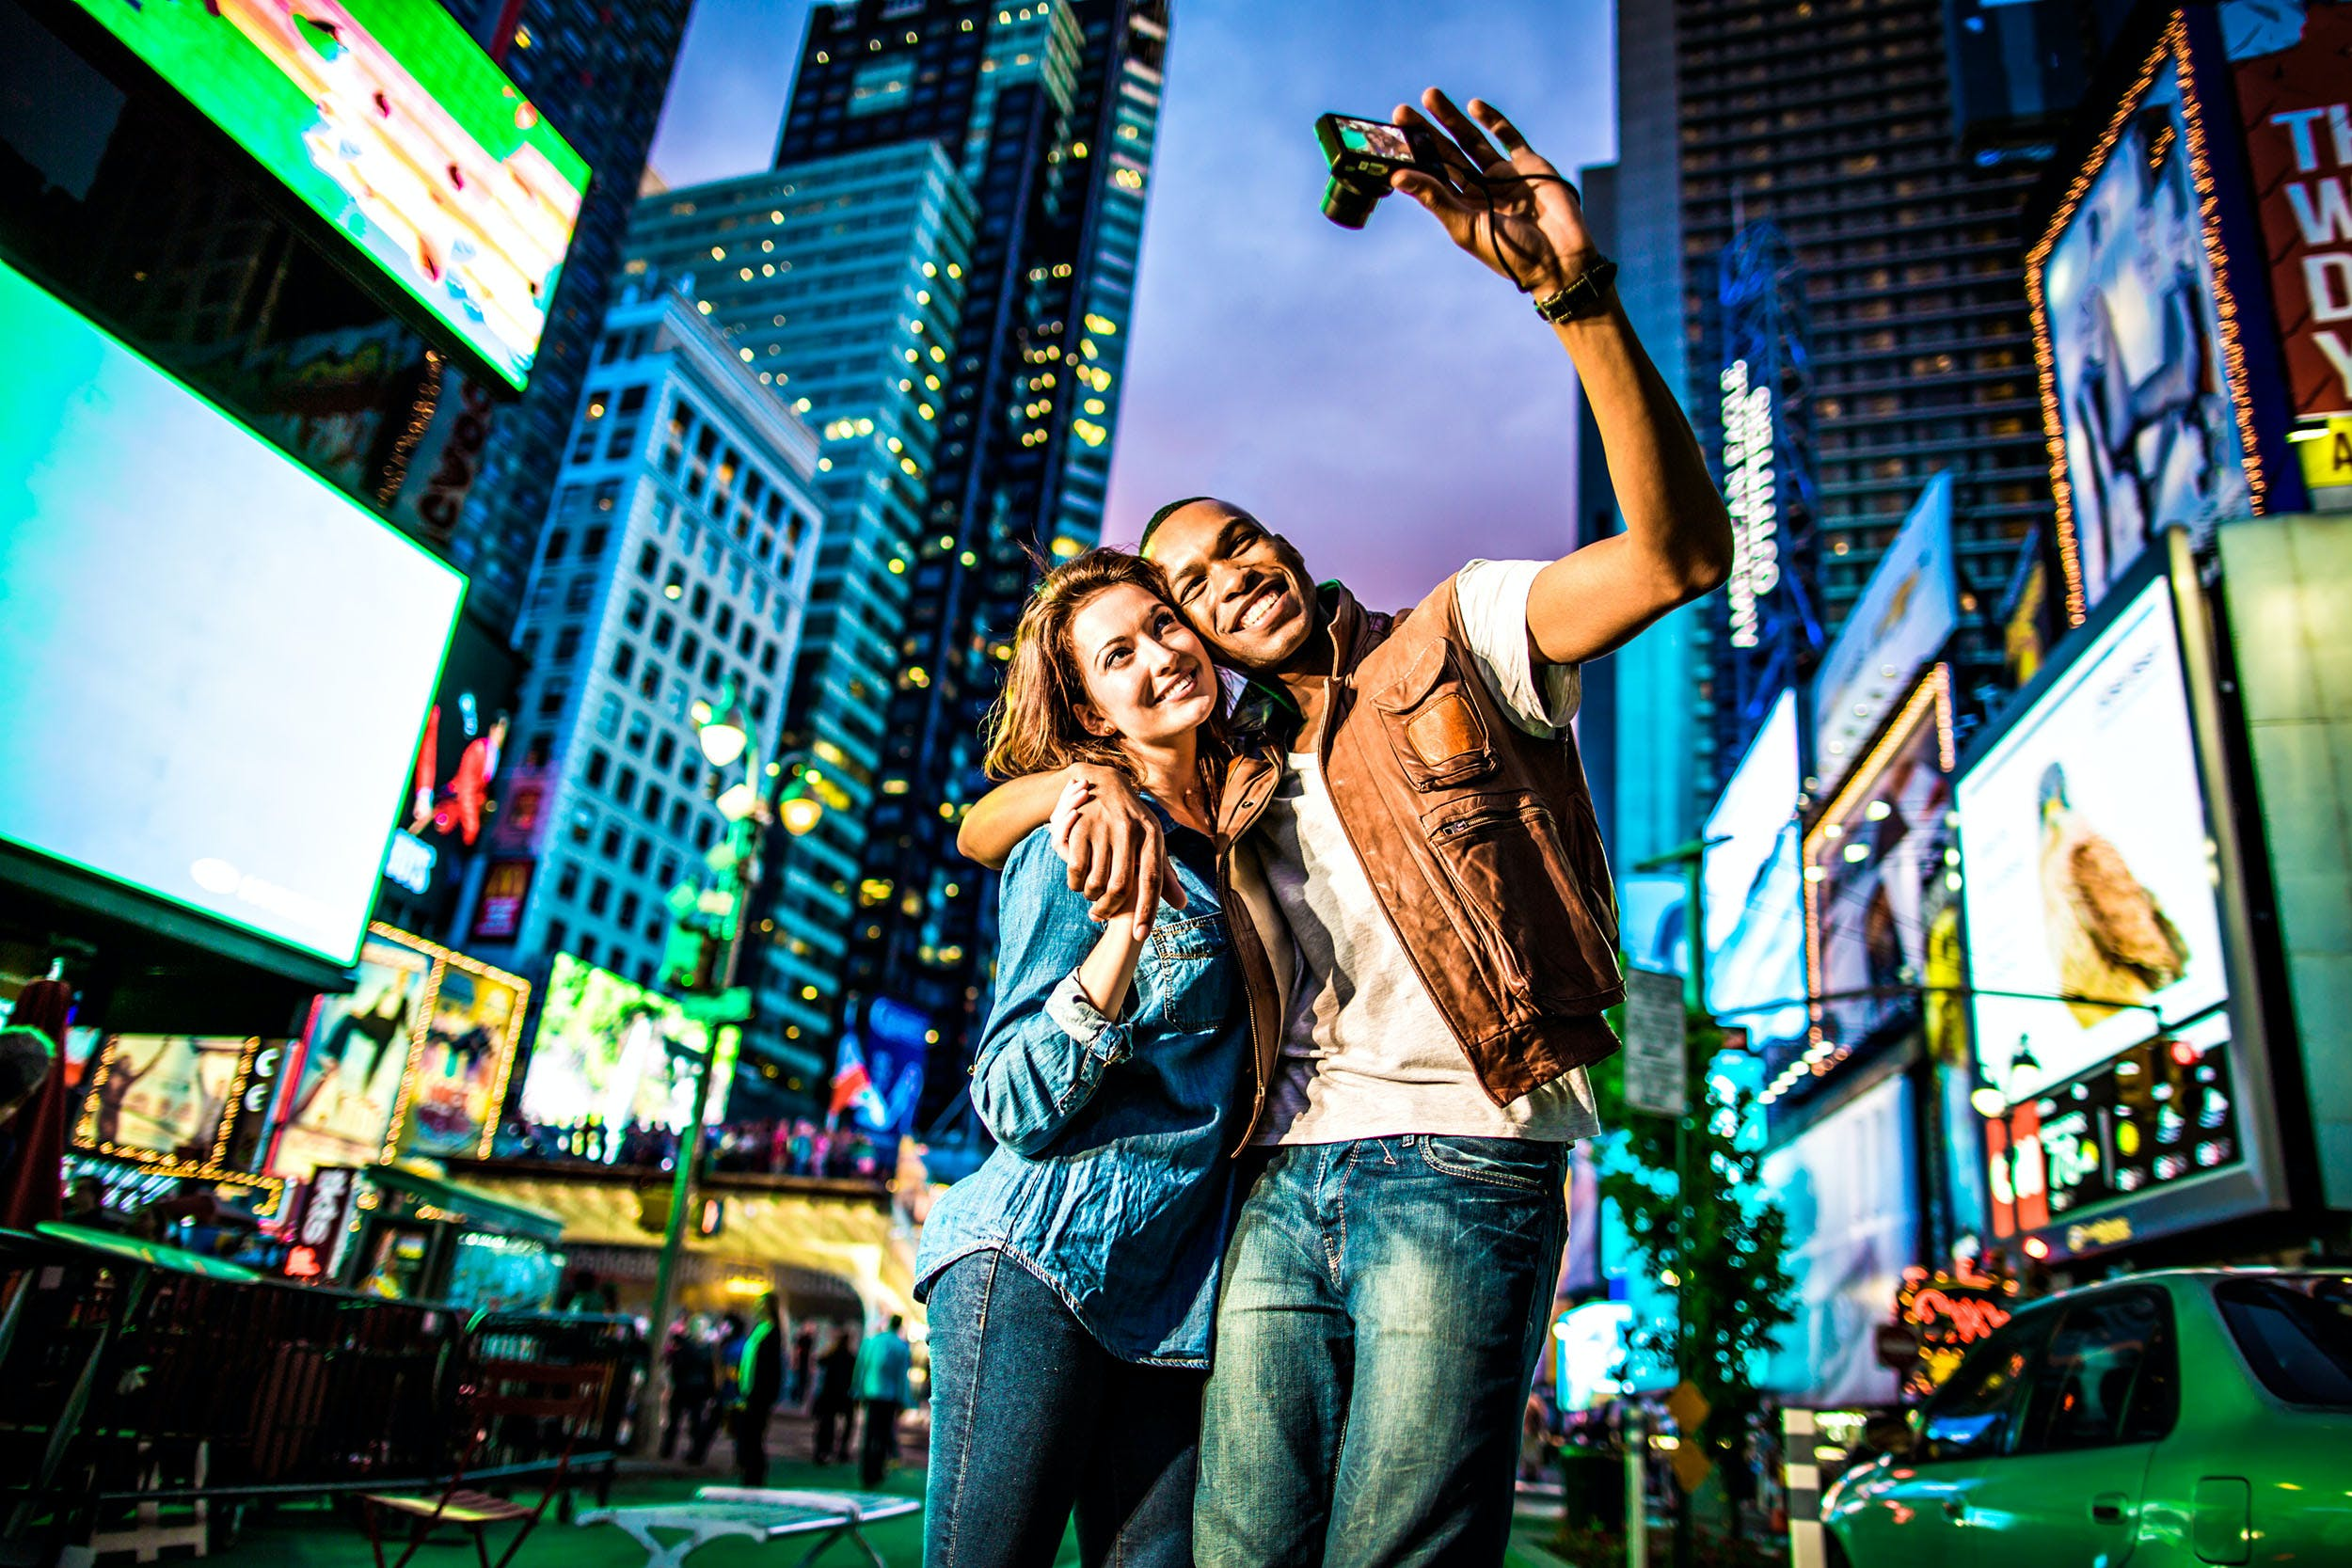 Couple in Times Square - New York City